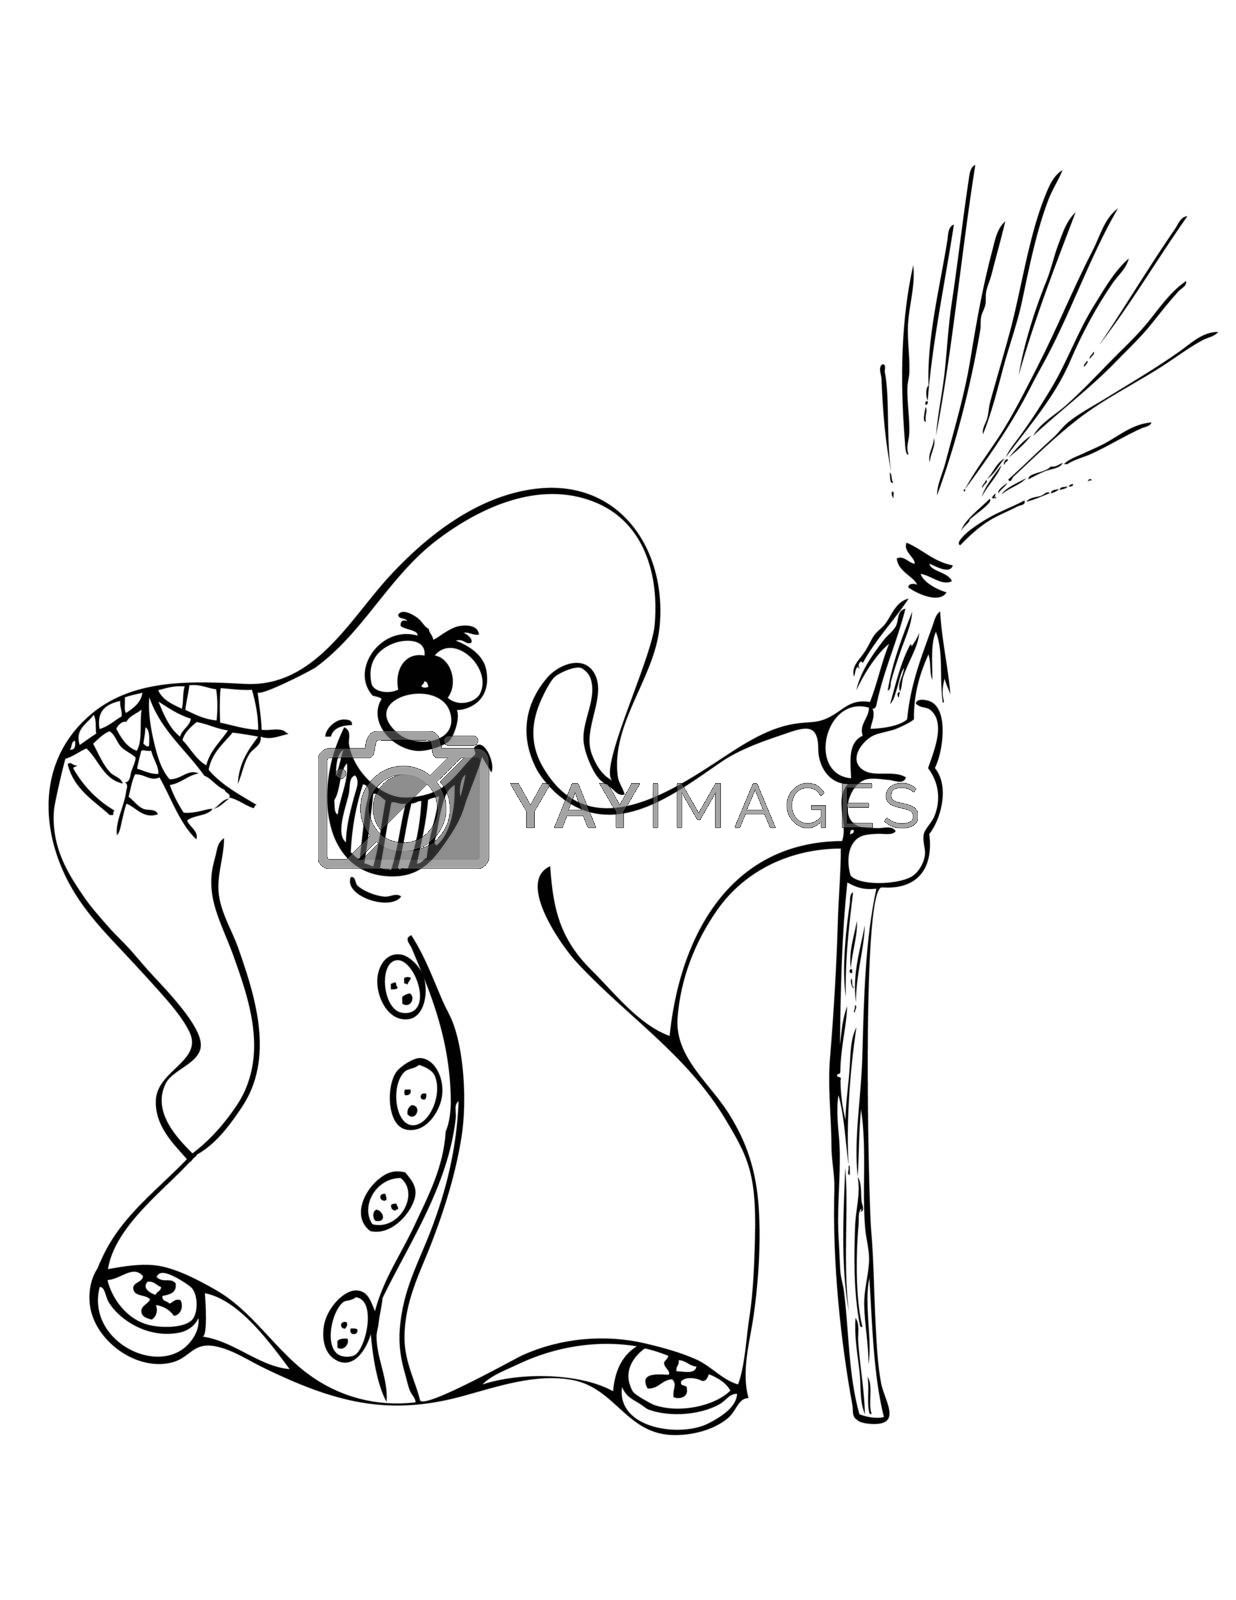 big smile ghost with broom  for coloring